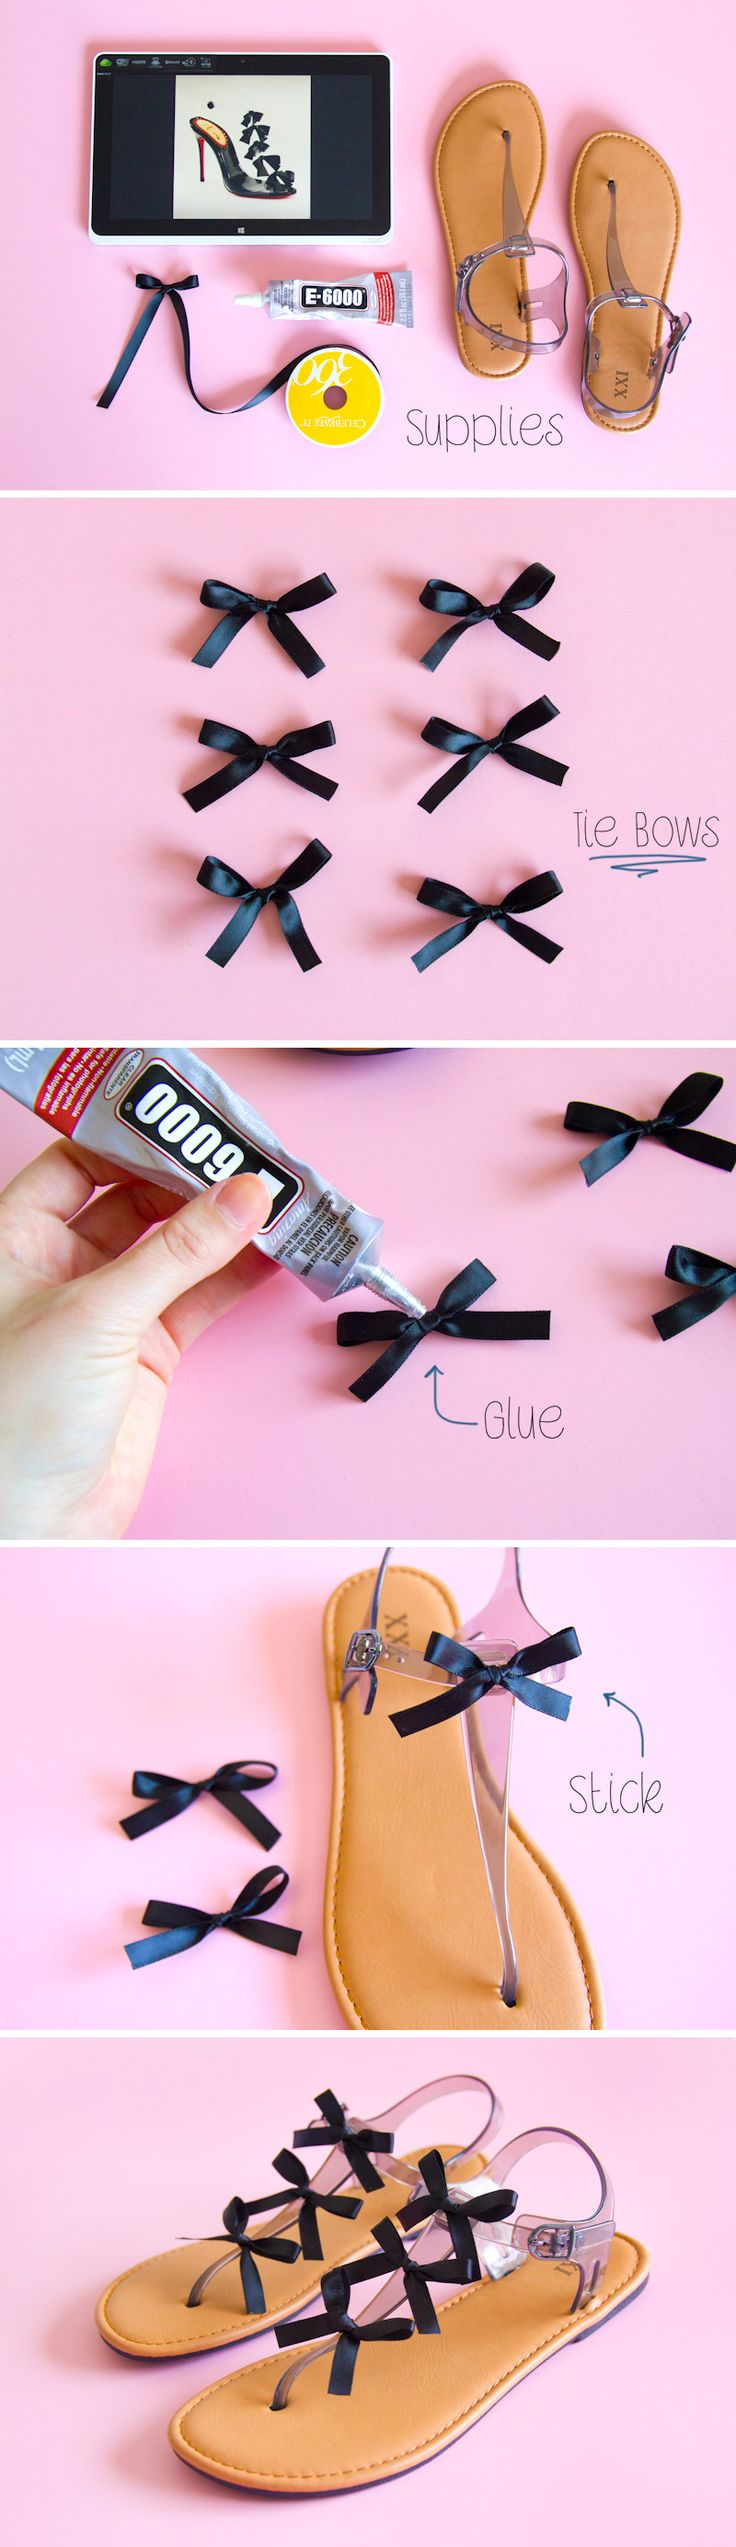 DIY Shoe Tutorial - Make your own bow sandals. More shoe DIY here: http://www.sewinlove.com.au/2015/10/24/make-diy-lace-up-flats/